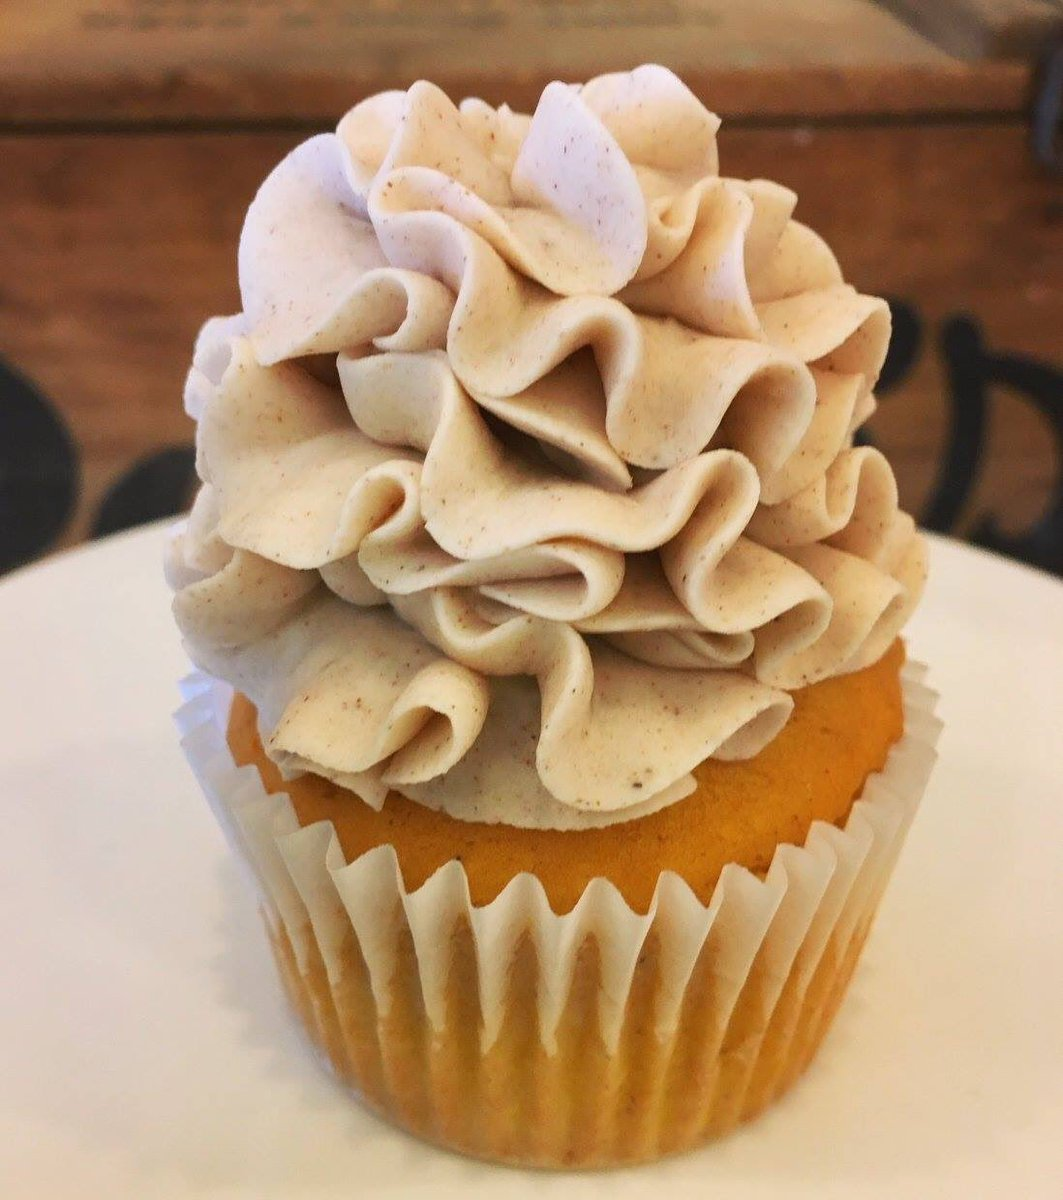 This weekend we can finally bring back our Cinnamon Pumpkin Cupcake. Place an order through our web store (FB/Website) or stop by this weekend for a fantastic fall treat! #pumpkin #cinnamon #cupcakes #october #fall https://t.co/YF4sfYGZ2F